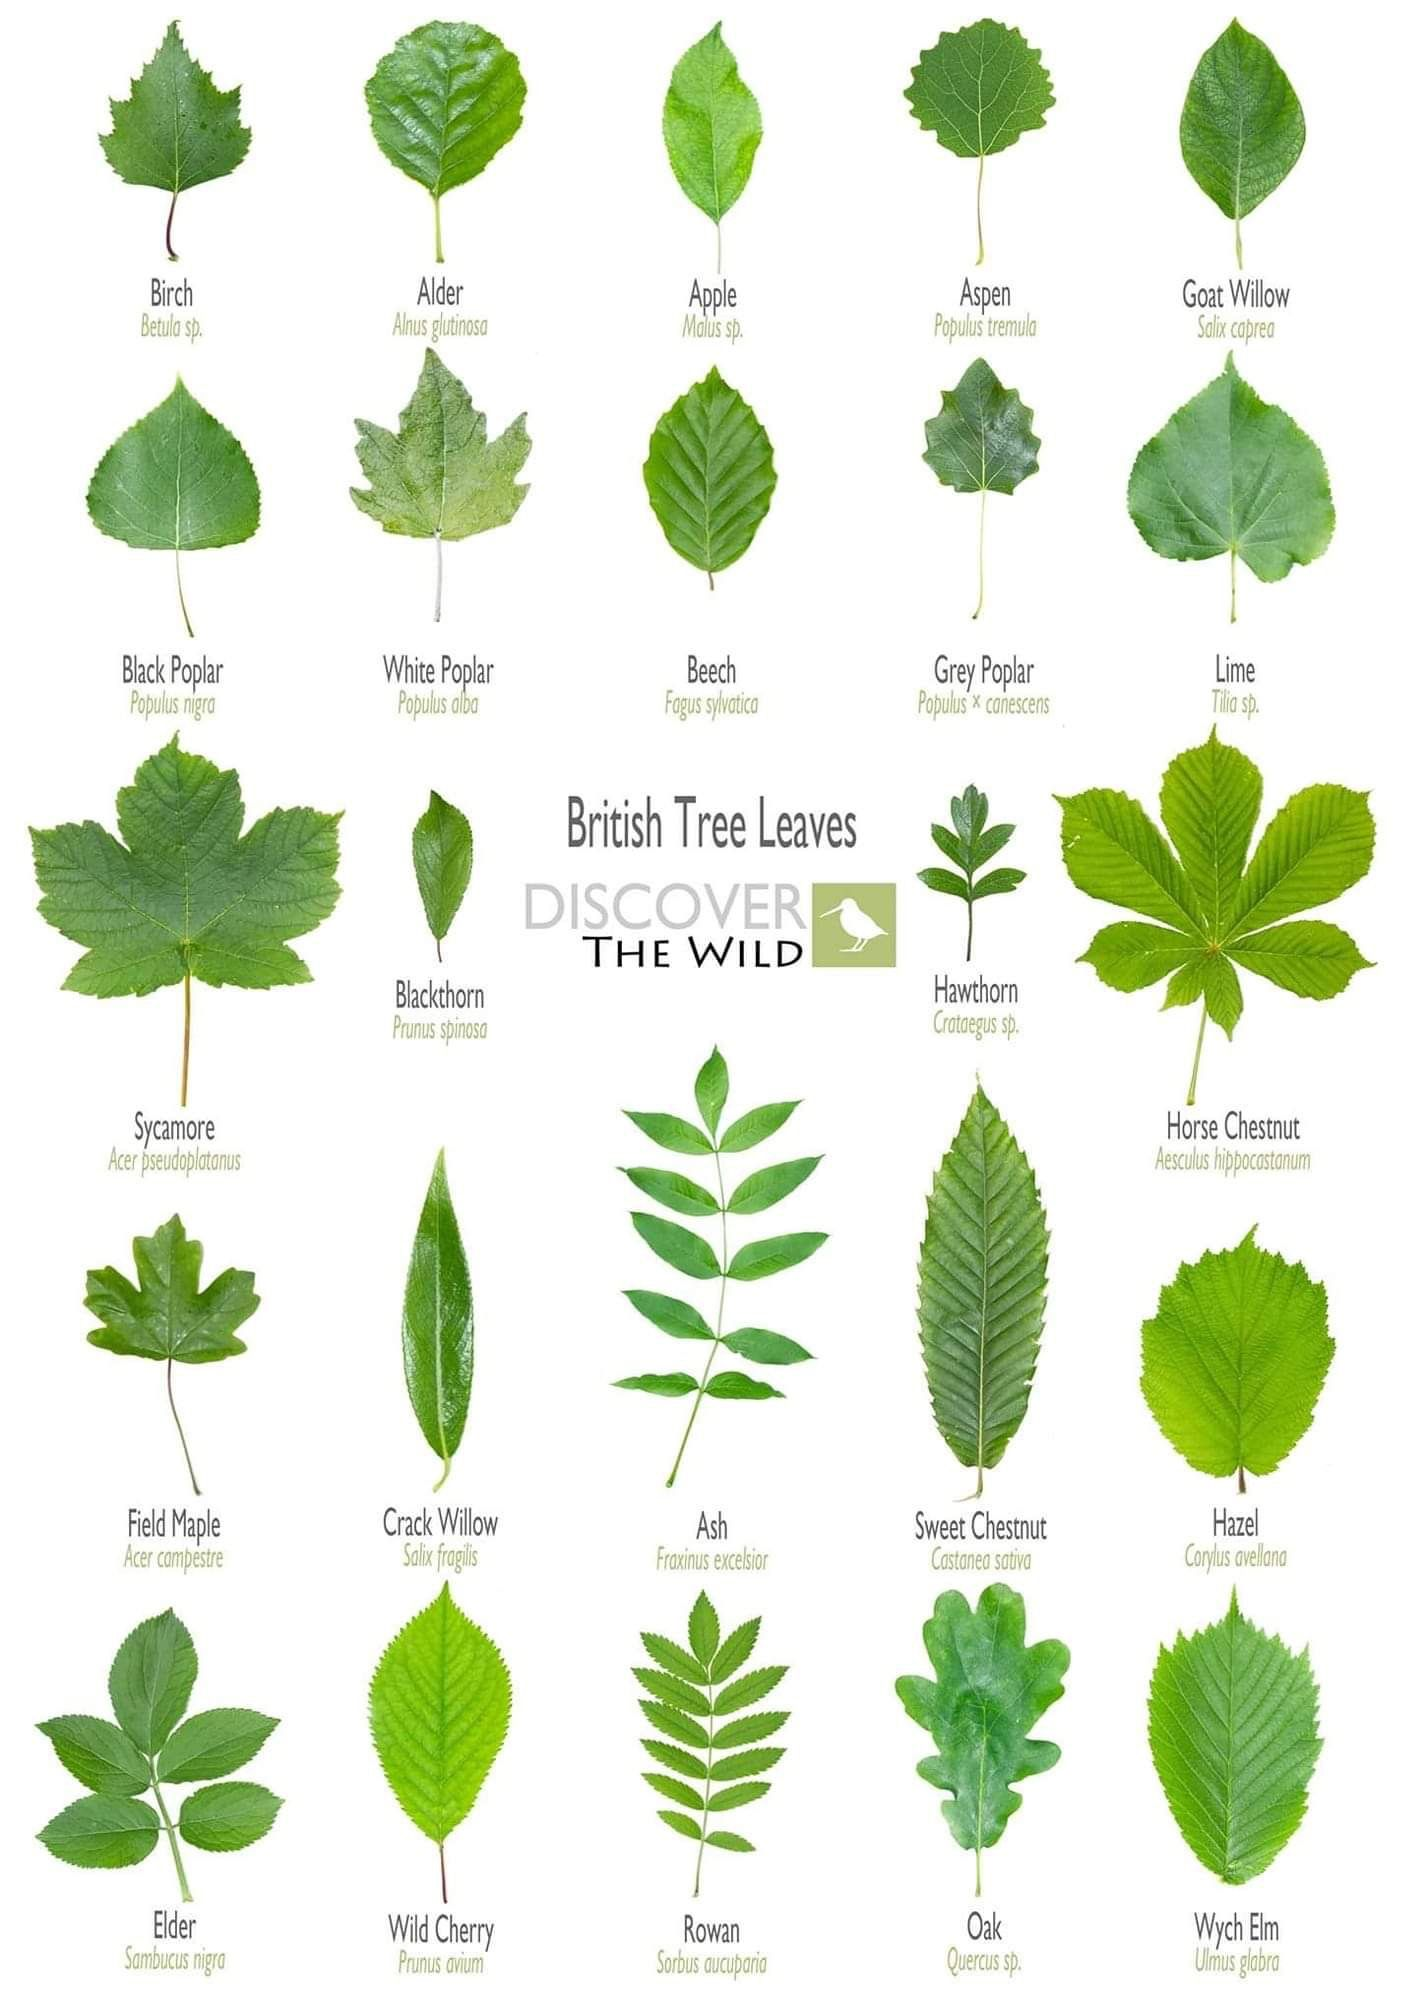 Leaf Shapes And Their Names In